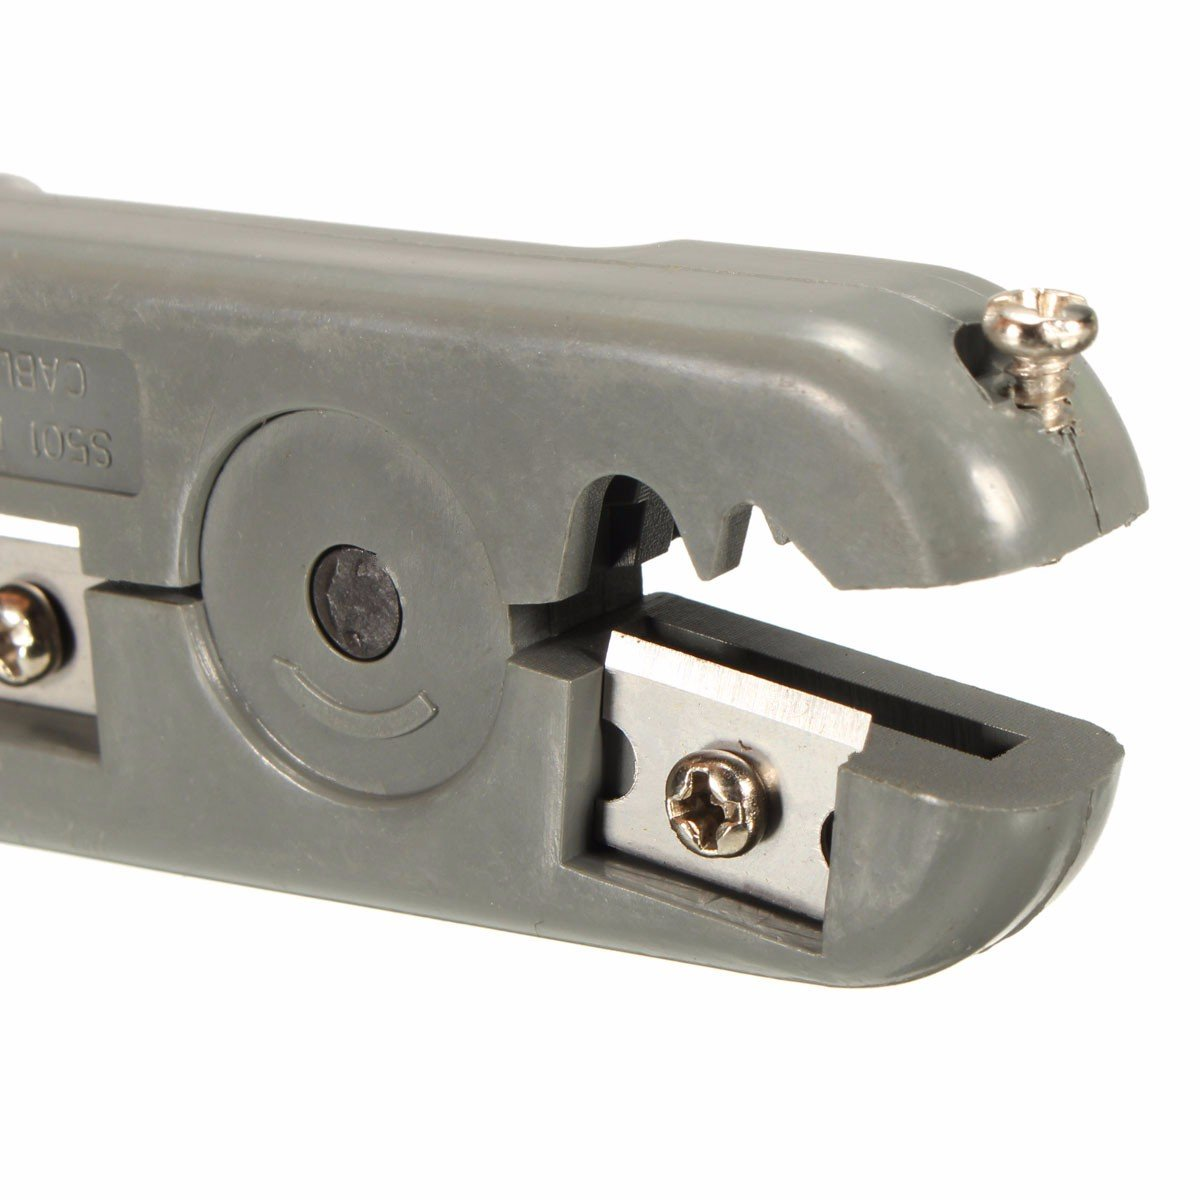 Rj45 Rj11 Cat6 Cat5 Punch Down Network Phone Lan Utp Cable Cutter Block Wiring Wire Stripper